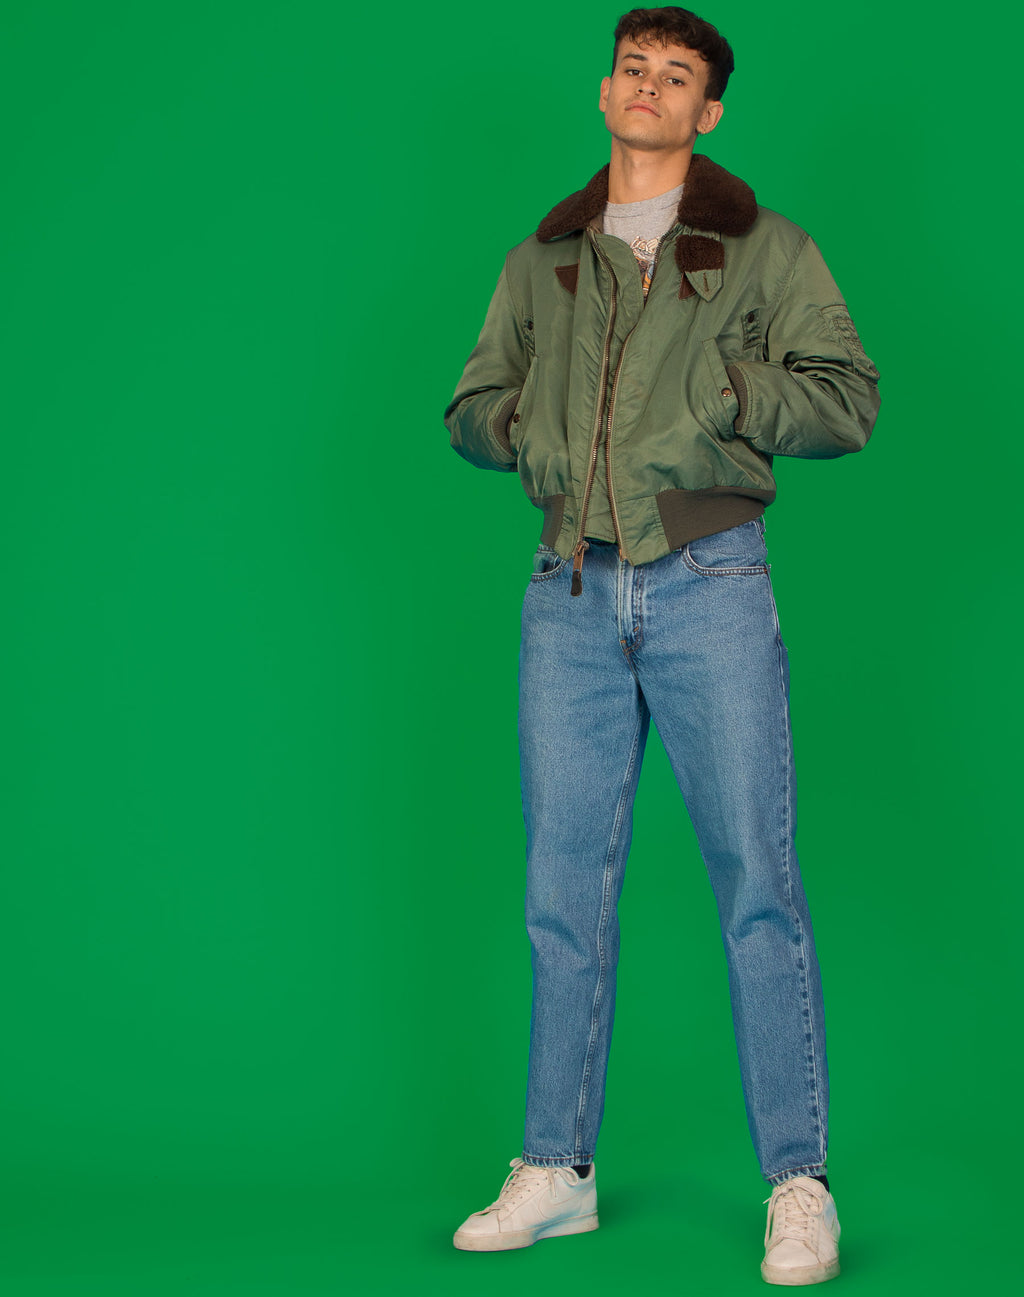 ARMY ISSUE GREEN BOMBER JACKET